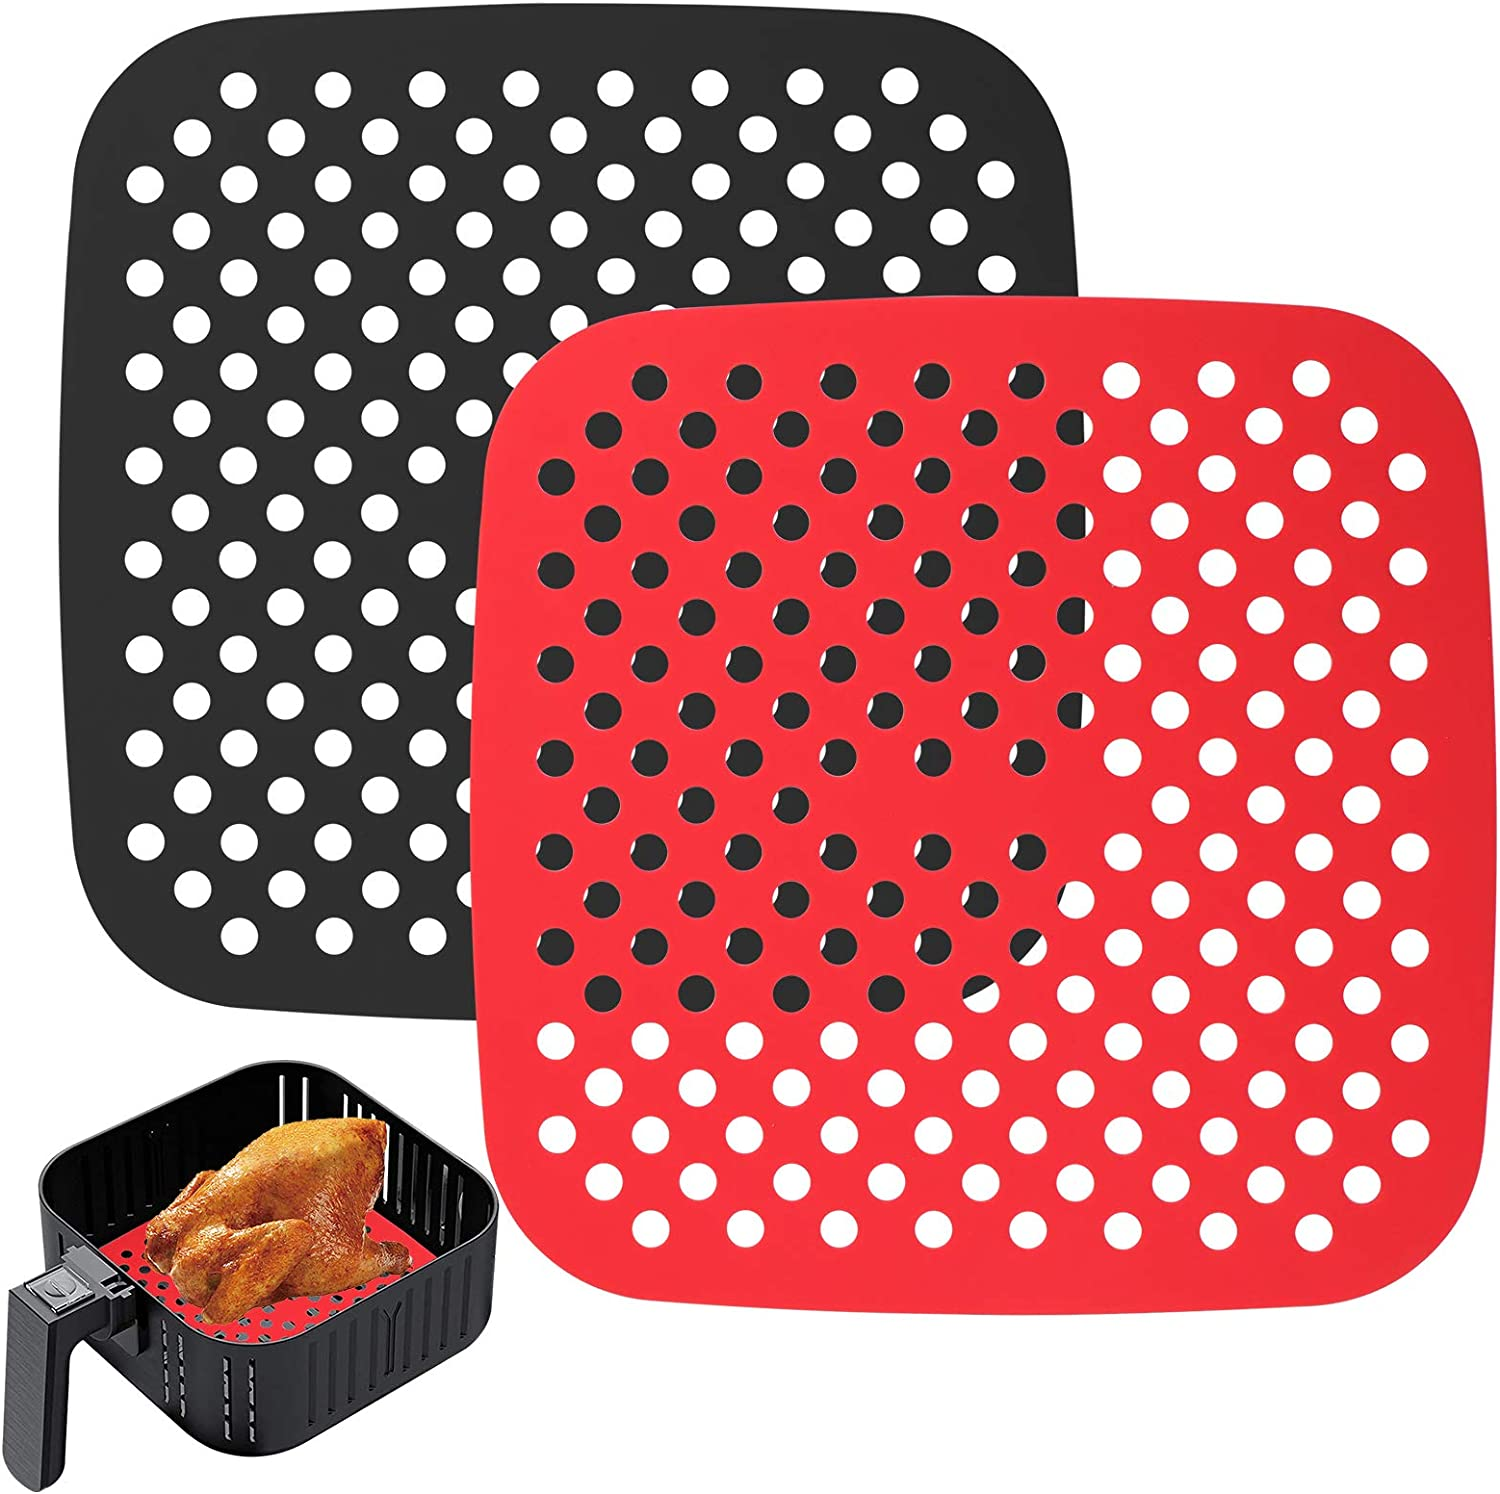 Mity rain Reusable Air Fryer Liners Silicone, 8.5 Inch Square Non-Stick Basket Mats Accessories, Bamboo Steamer Liners, for 5.8 QT & Larger Air Fryers, Replacement for Parchment Paper - (2 Packs)